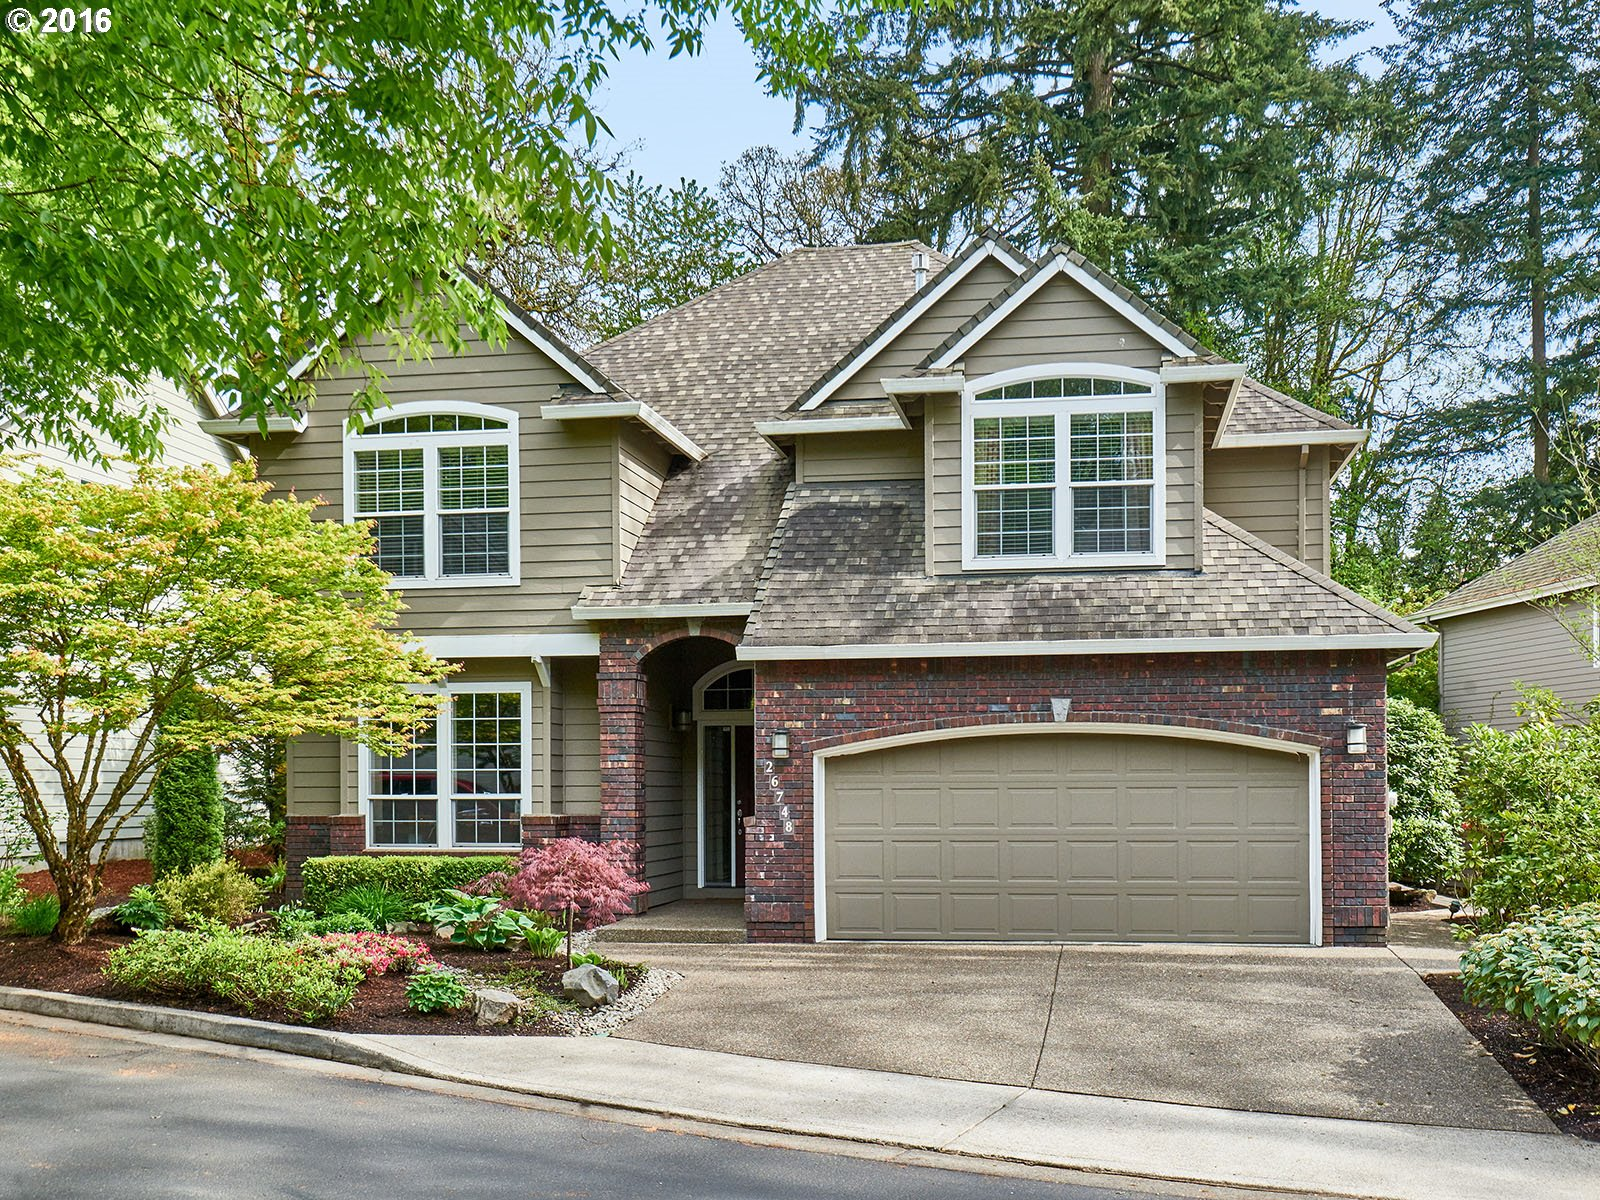 $550,000 - 4Br/4Ba -  for Sale in The Enclave, Wilsonville